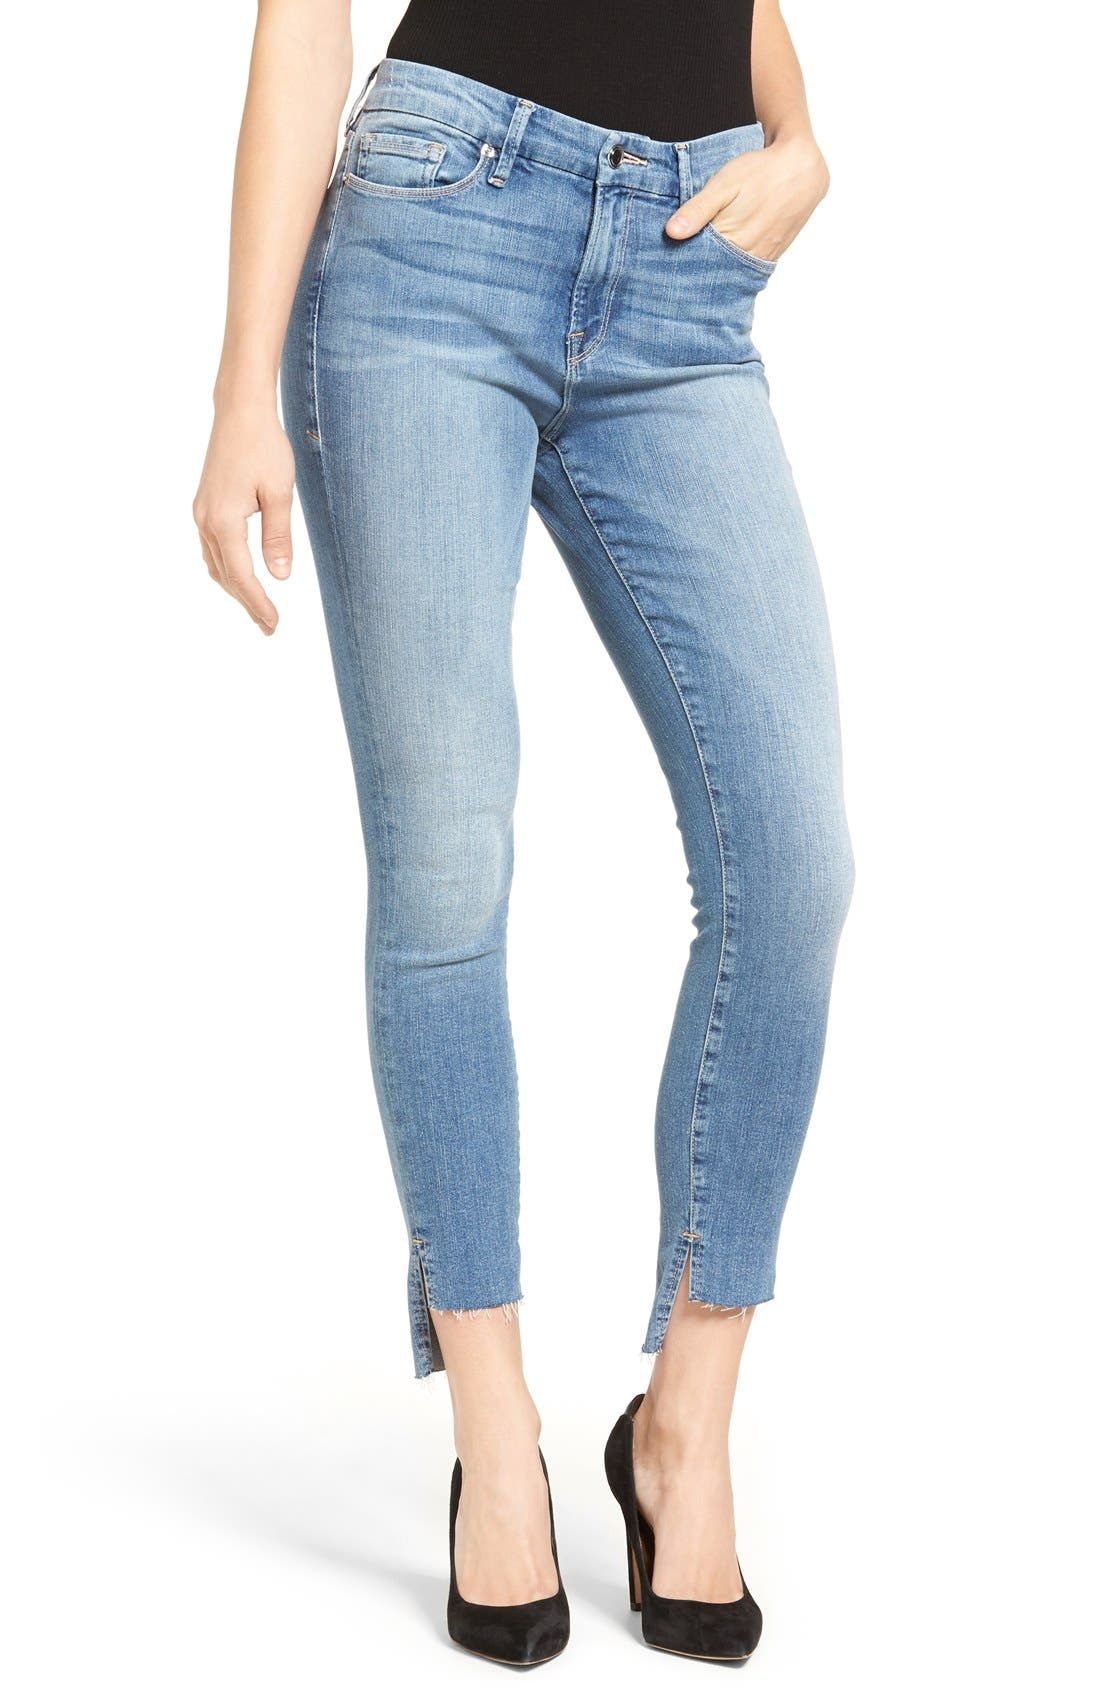 Main Image - Good American Good Legs High Waist Skinny Jeans (Blue 007) (Extended Sizes)